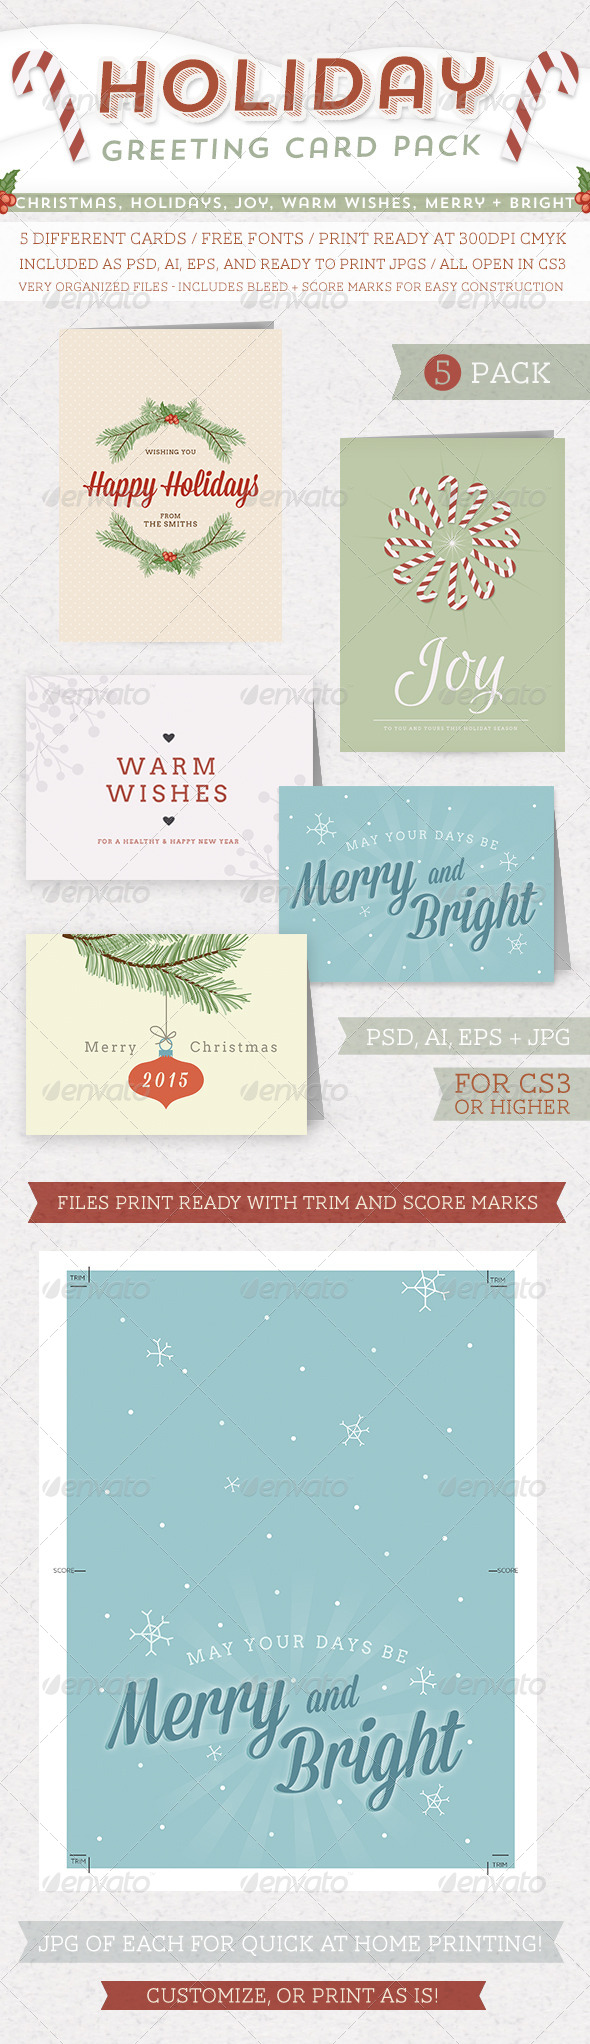 Holiday Greeting Card Pack - Holiday Greeting Cards